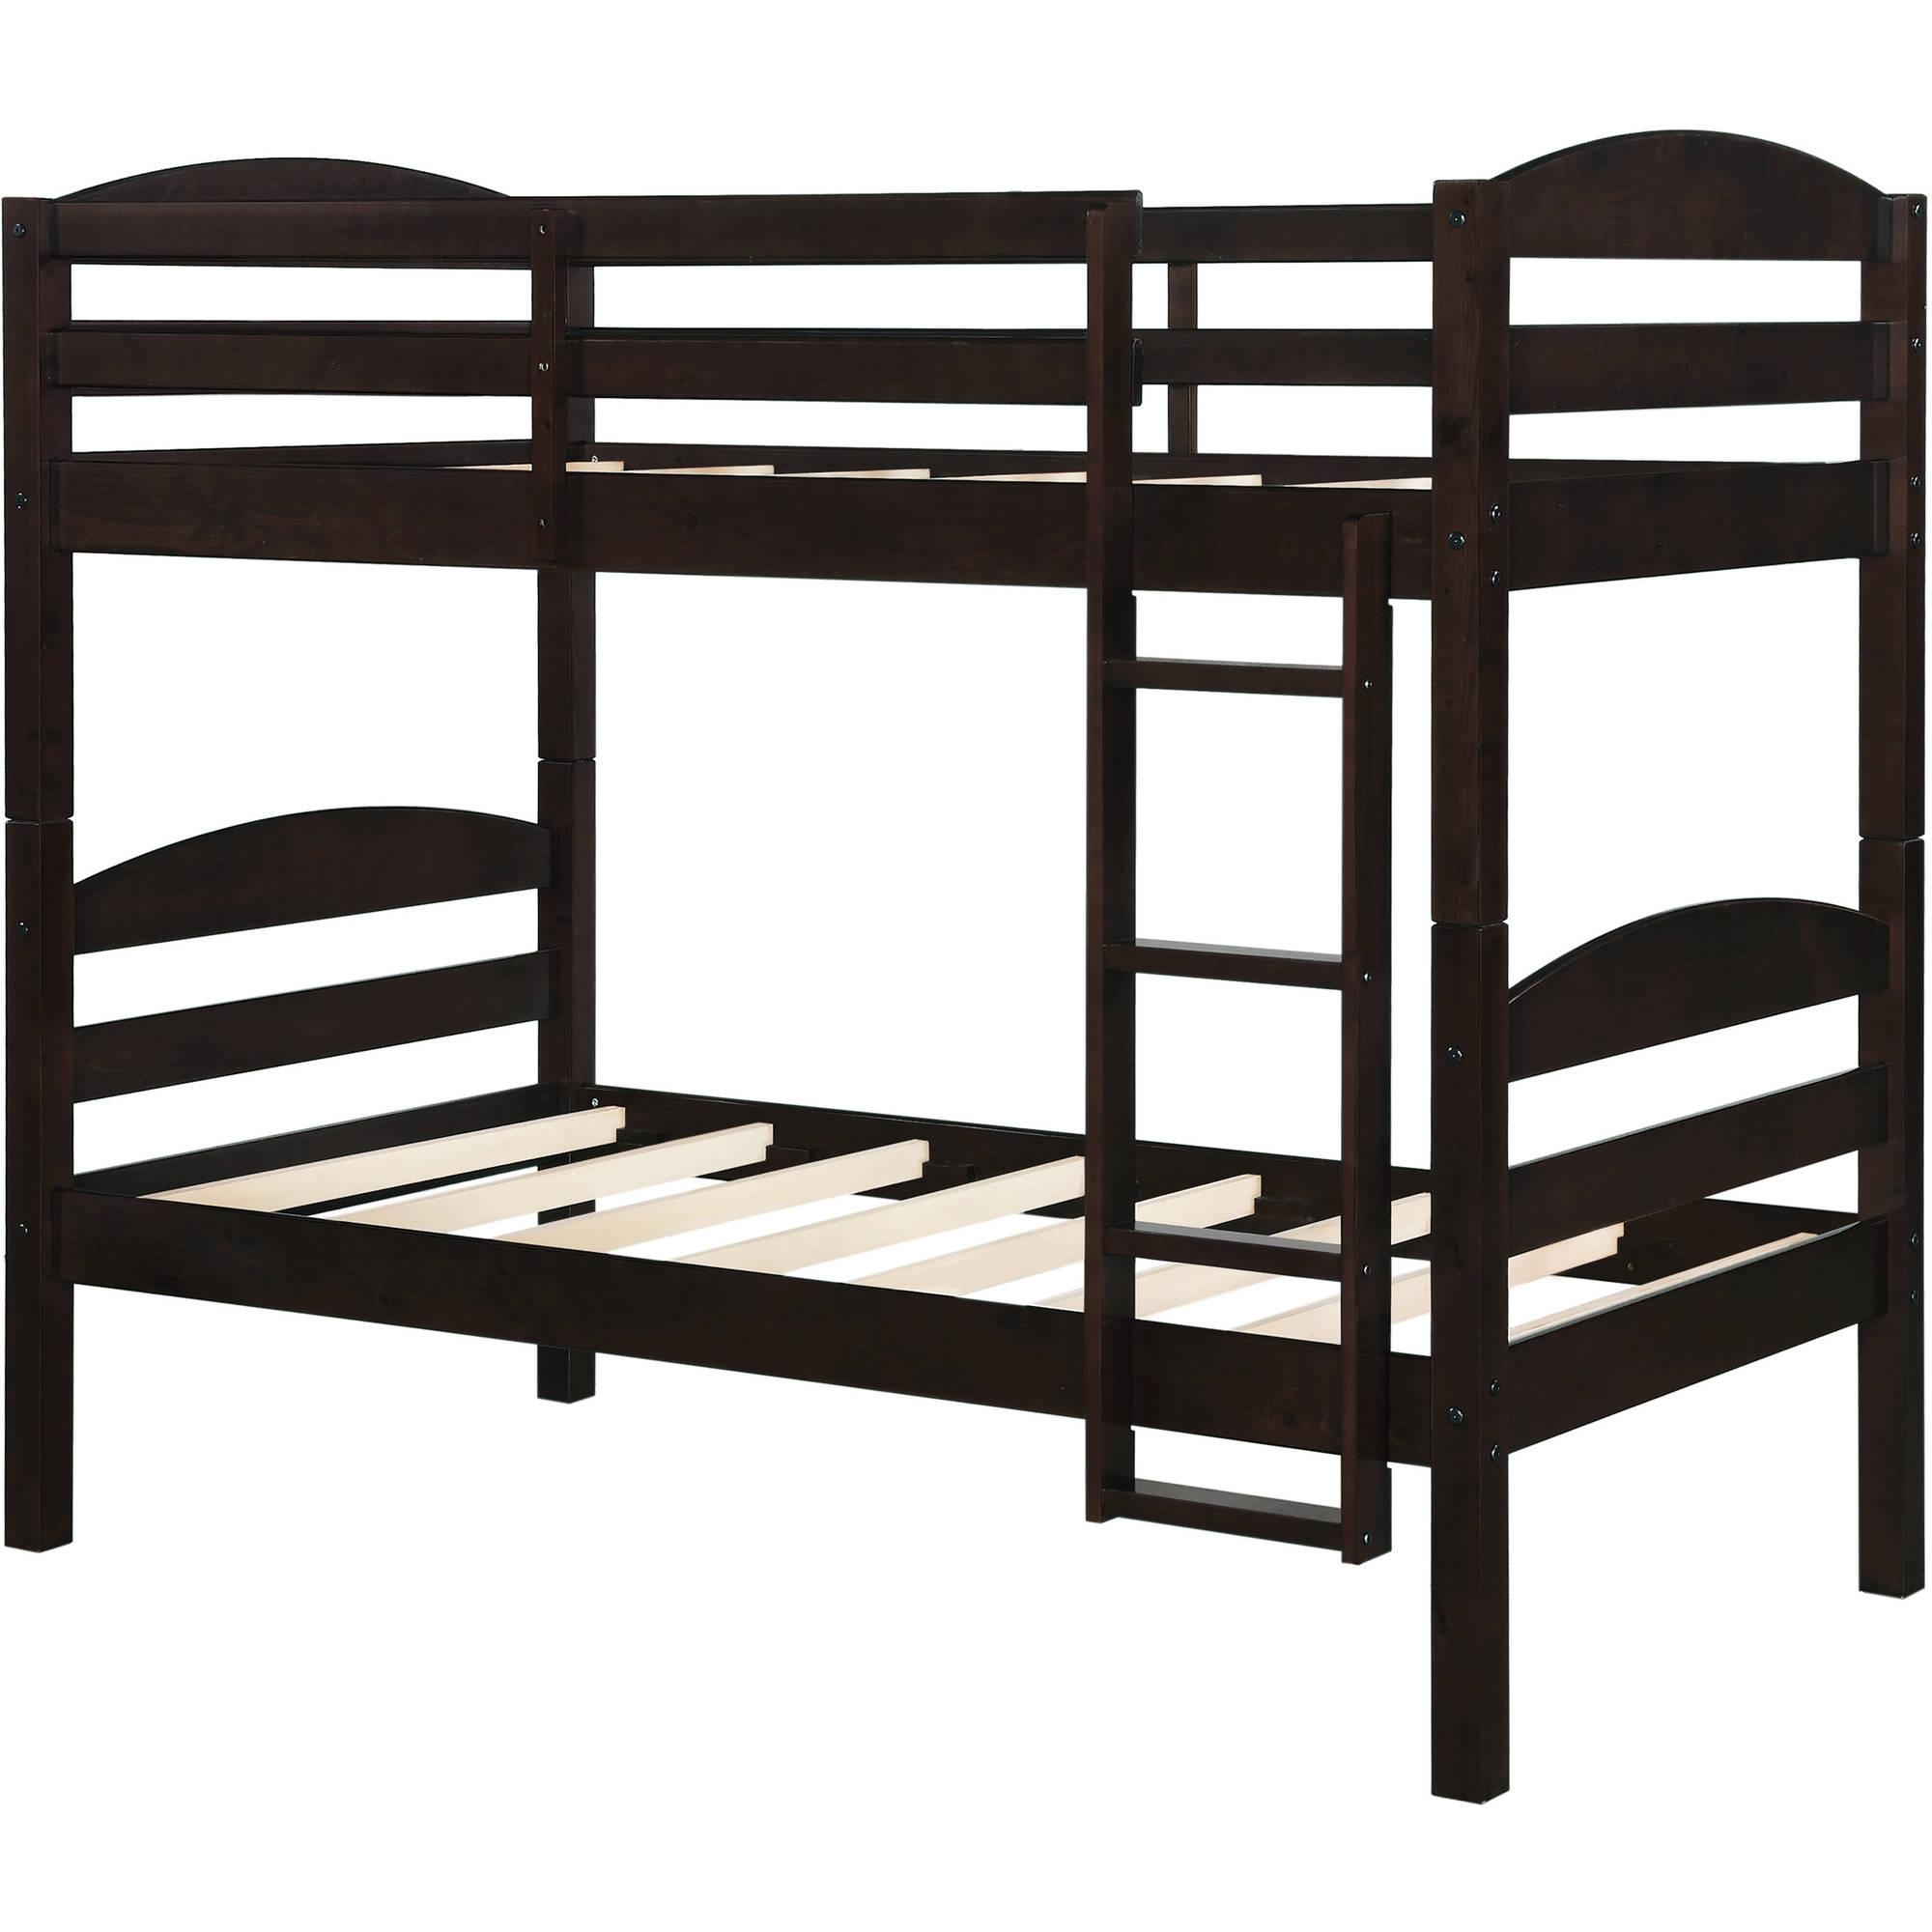 Bunk Beds Kmart With Mattress Throughout Bed